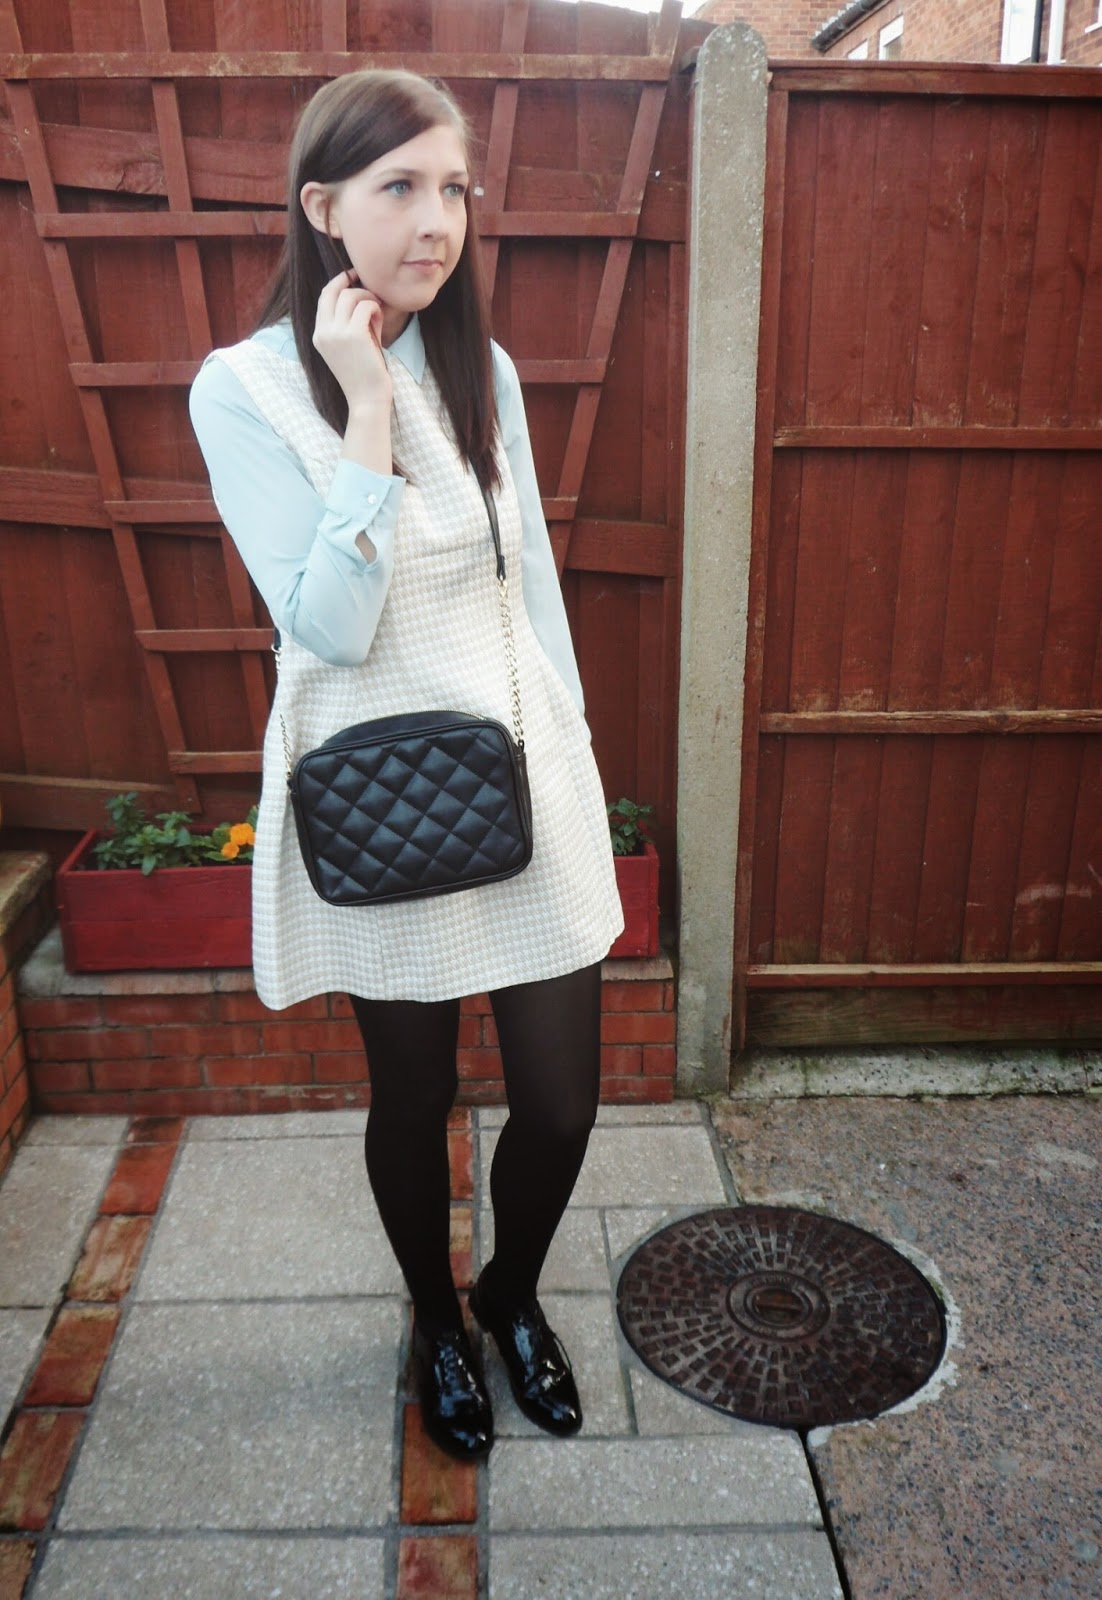 asseenonme, asos, primark, fuschiawhite, wiw, whatimwearing, ootd, outfitoftheday, lotd, lookoftheday, fbloggers, fashion, fashionbloggers, chanel, fblogger, brogues, gingham, fashionblogger, winterfashion, pastels